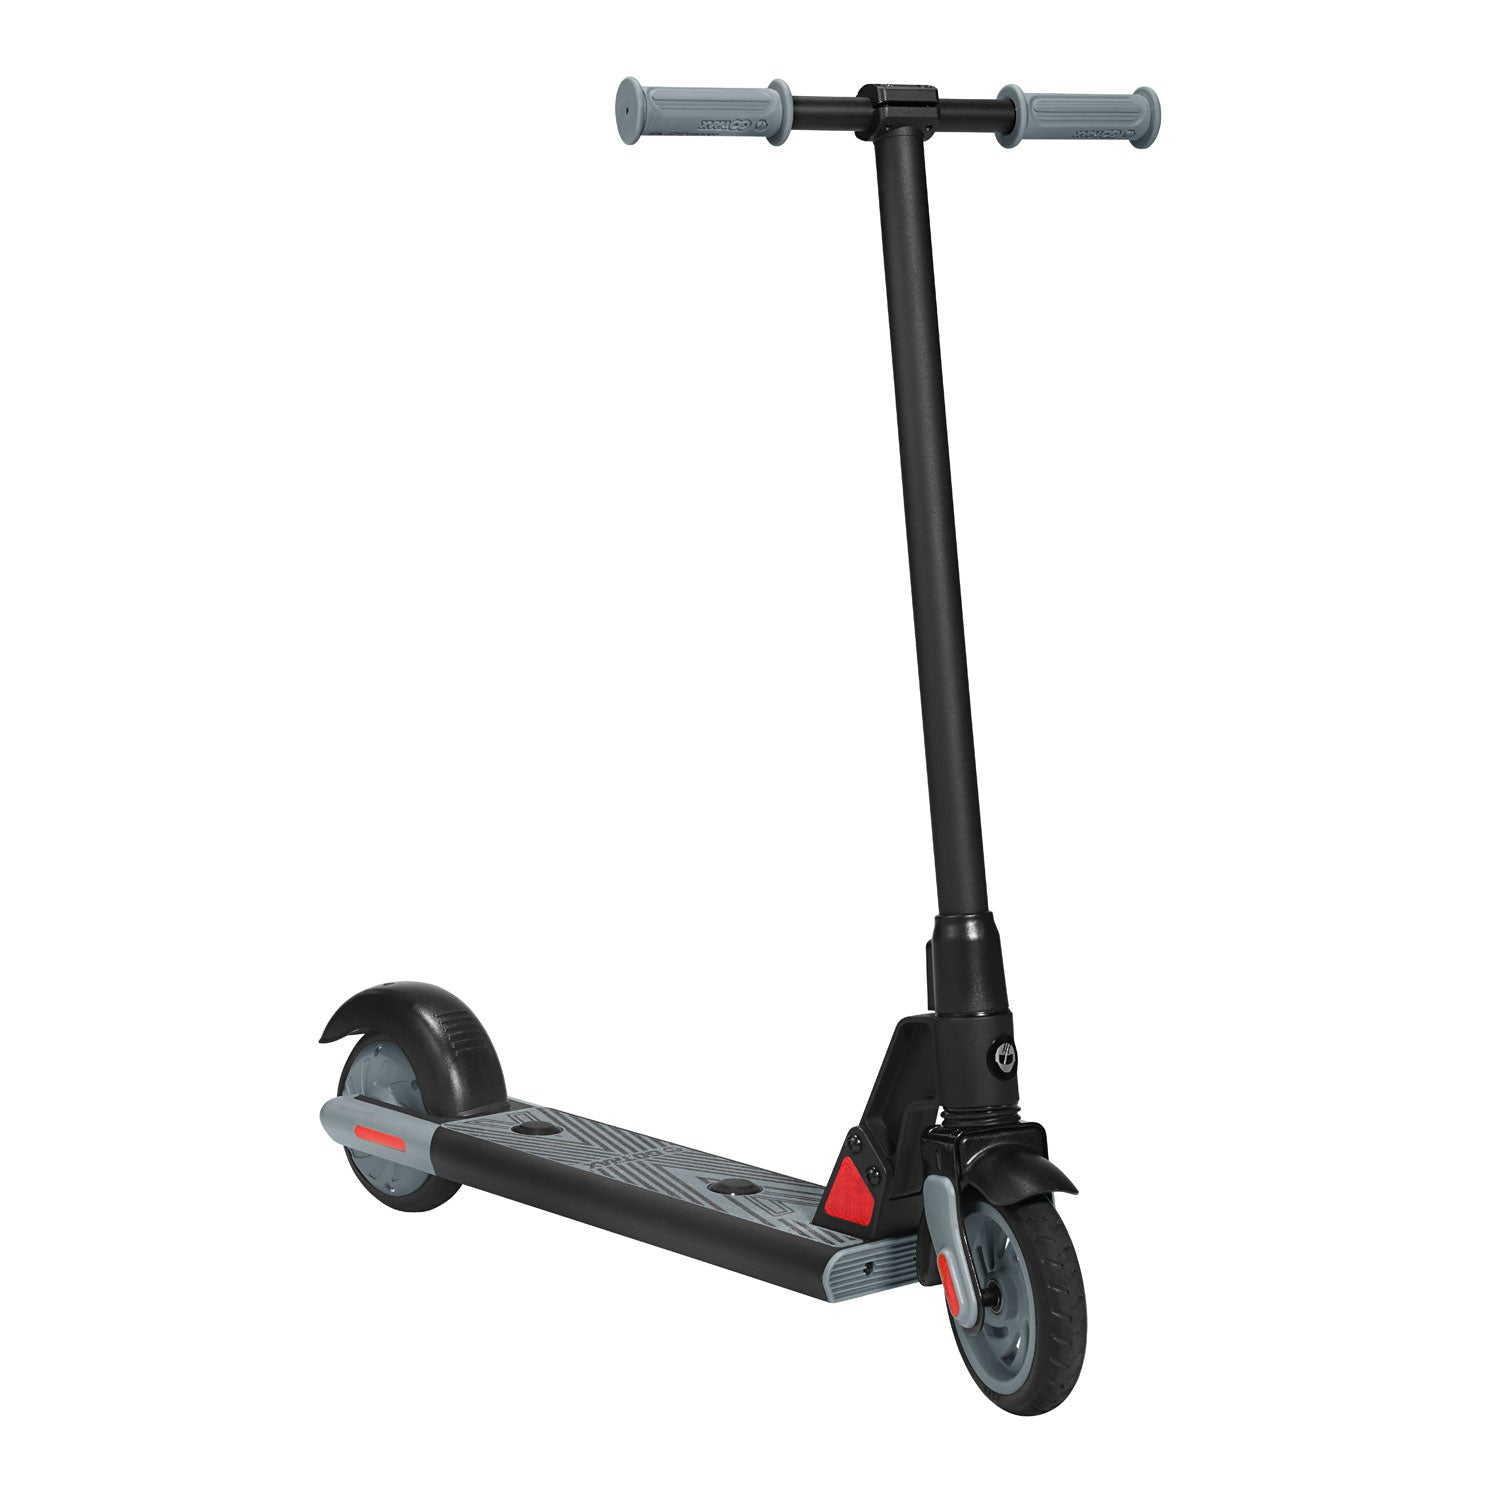 Black gks electric scooter for kids main image